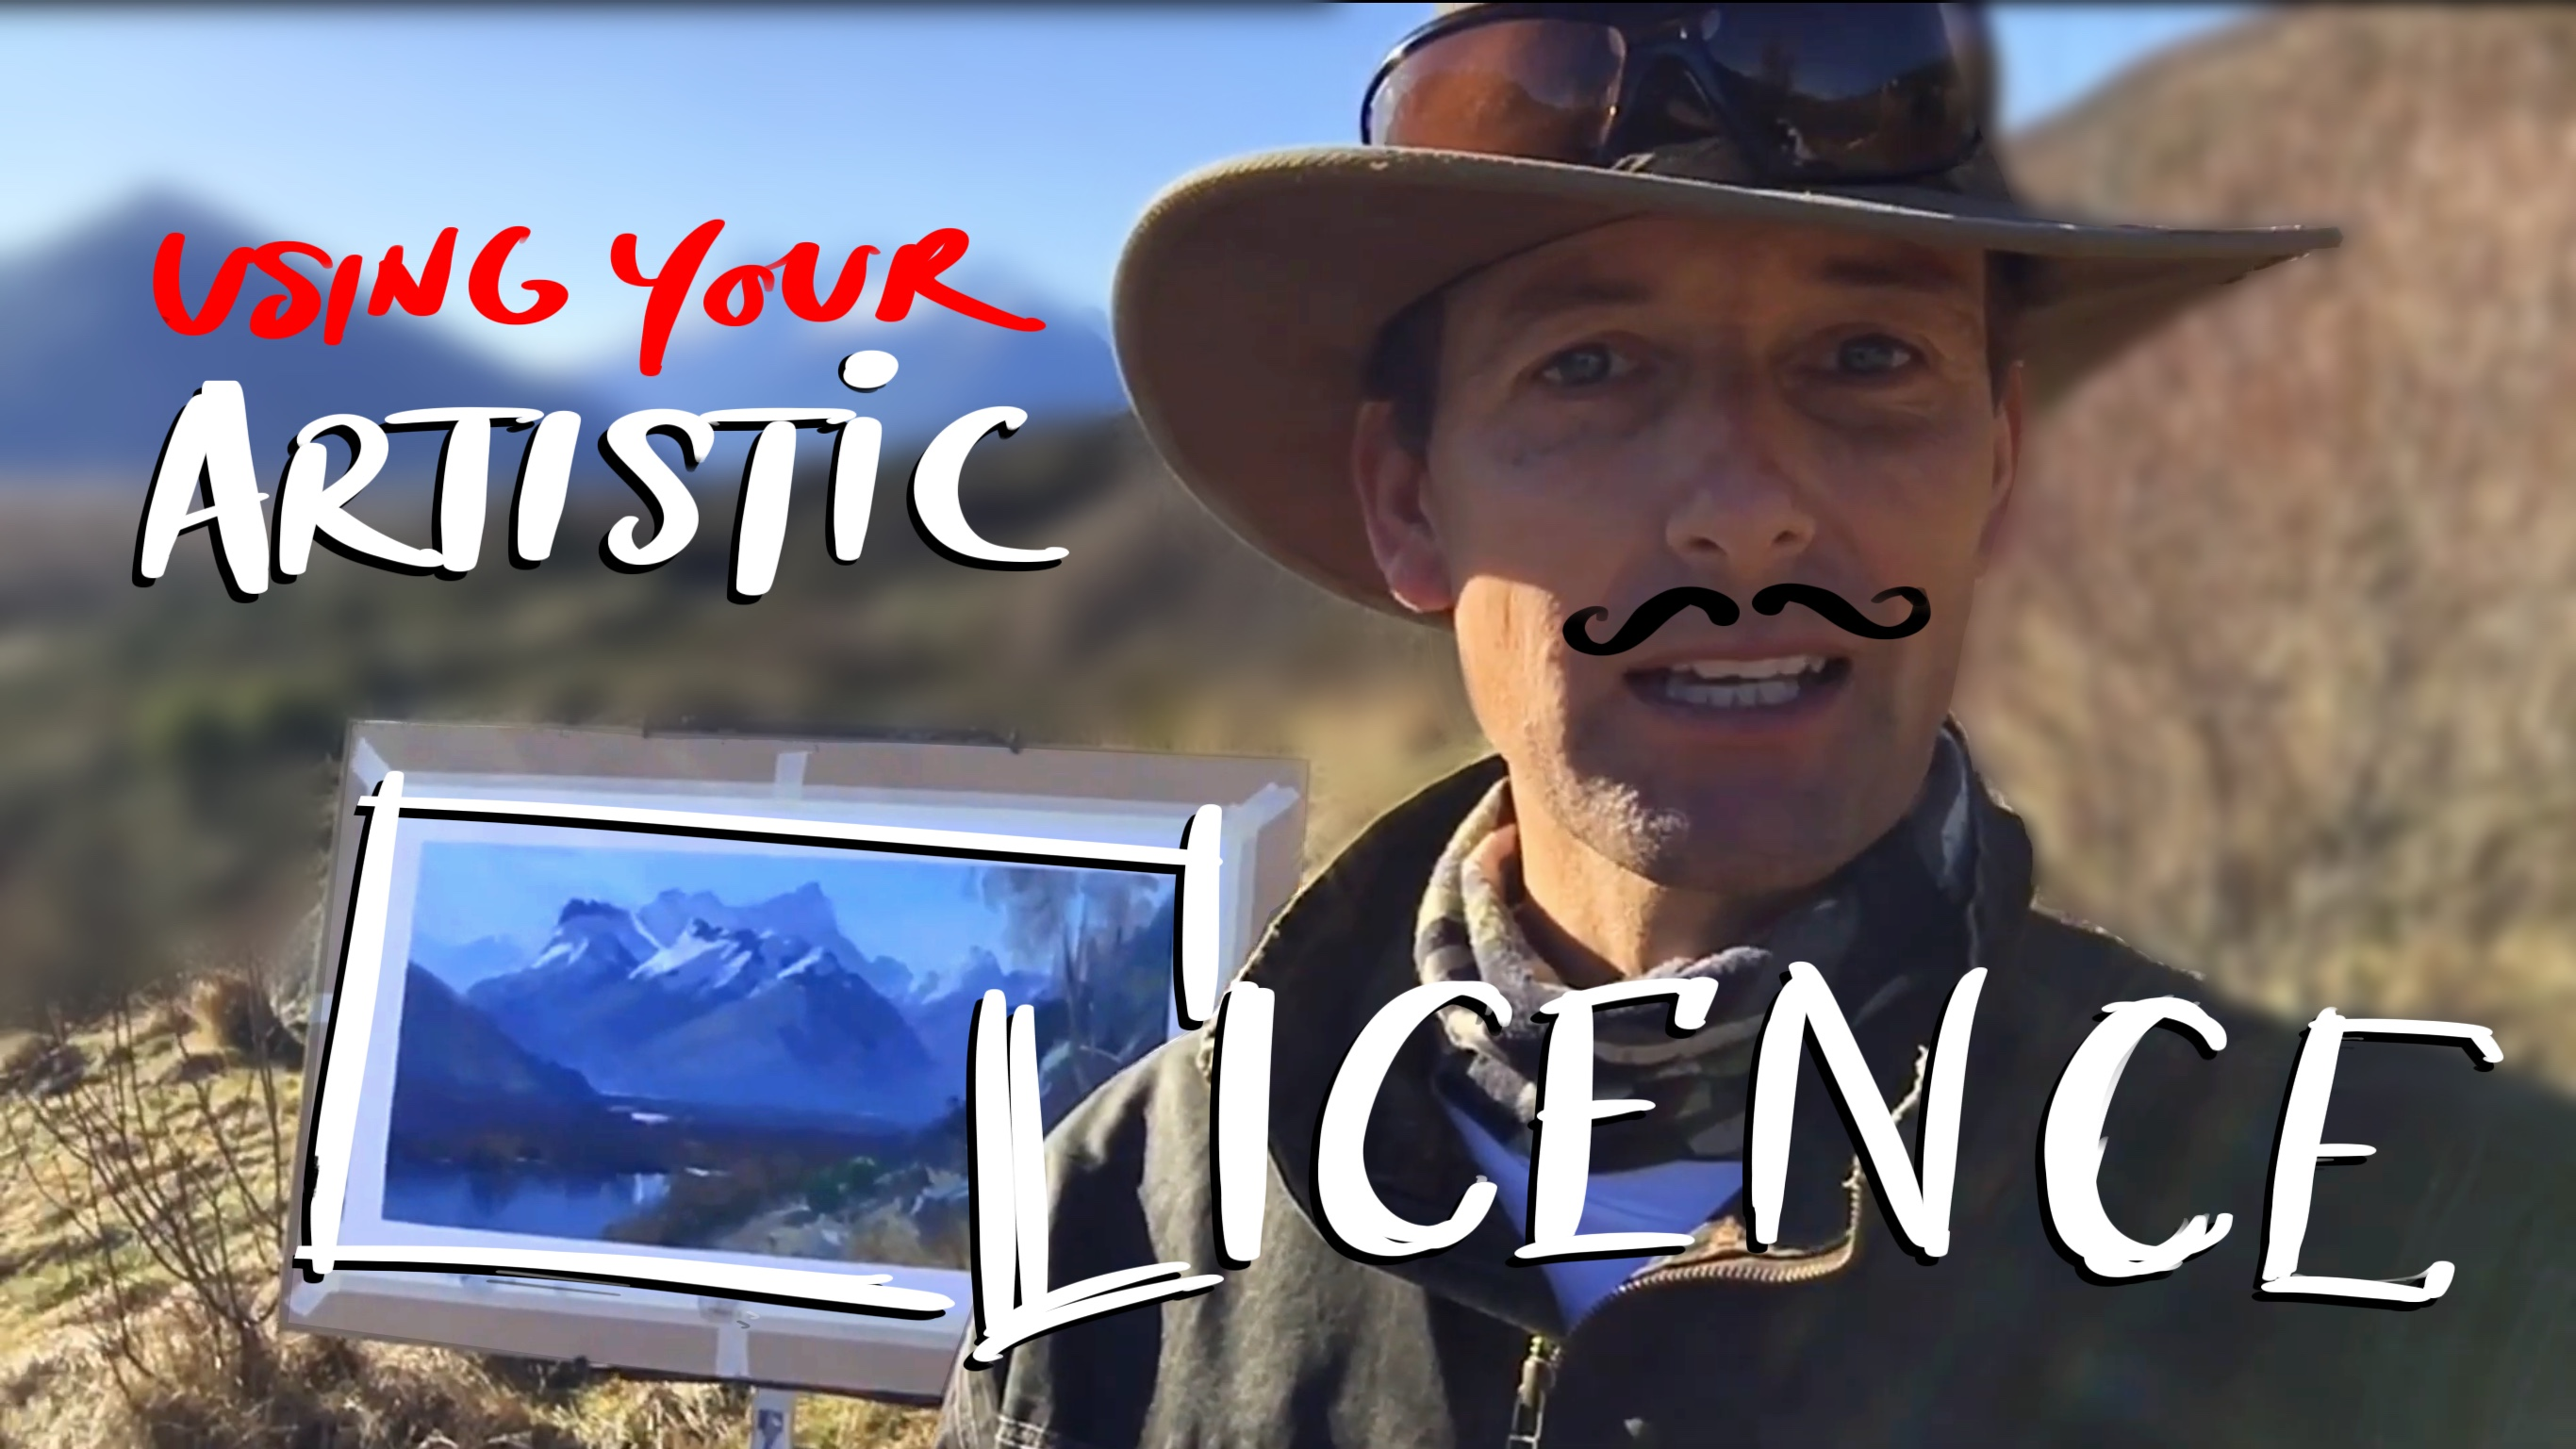 Using your artistic licence logo